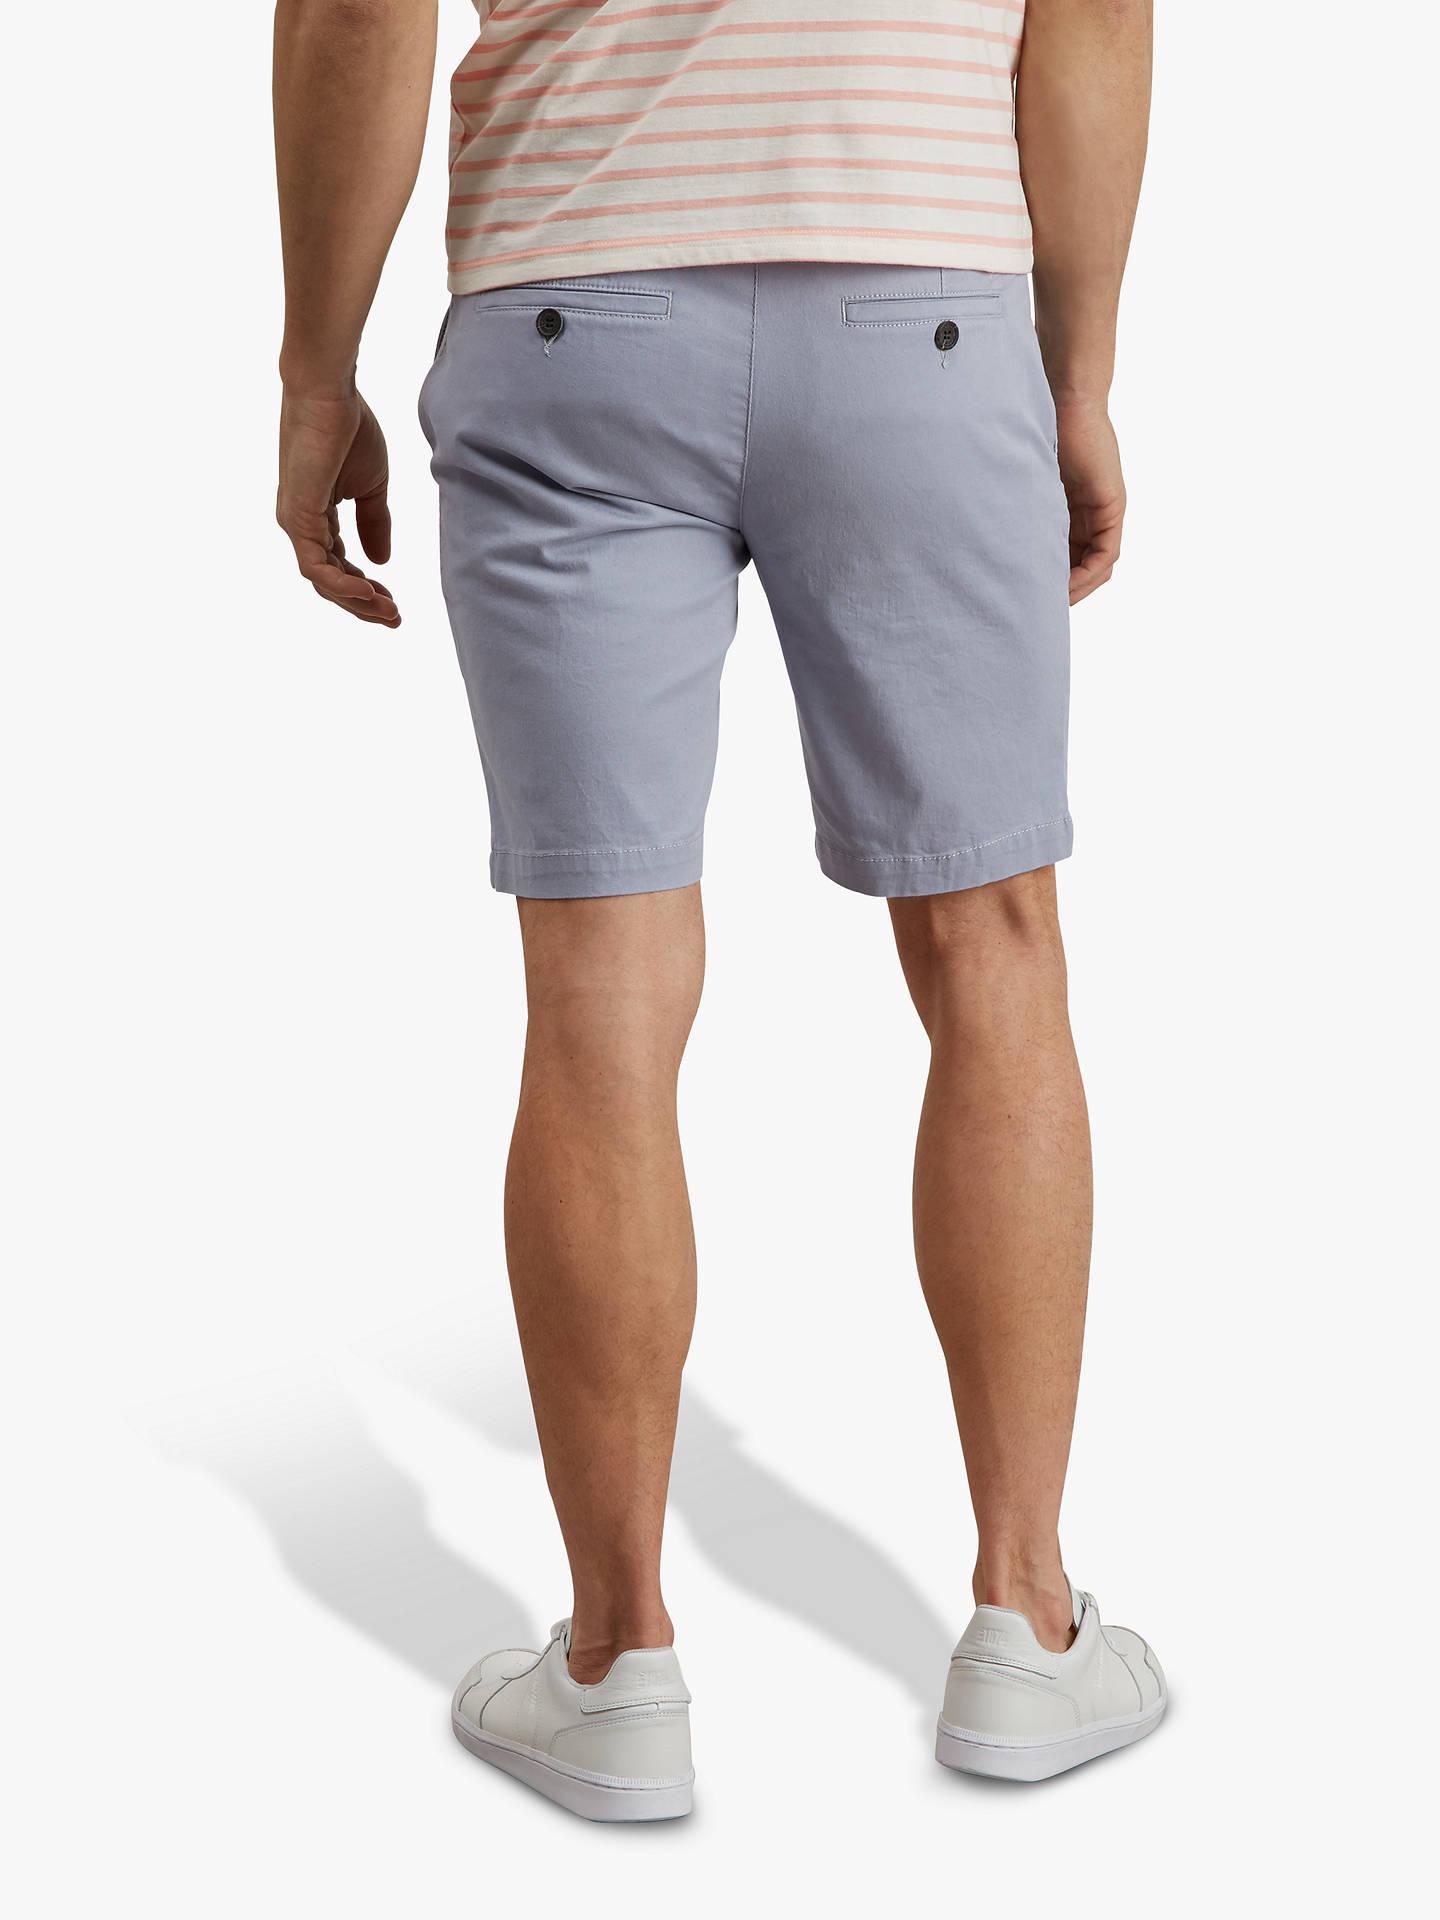 world-wide selection of presenting elegant and sturdy package Lyle & Scott Chino Shorts, Cloud Blue at John Lewis & Partners